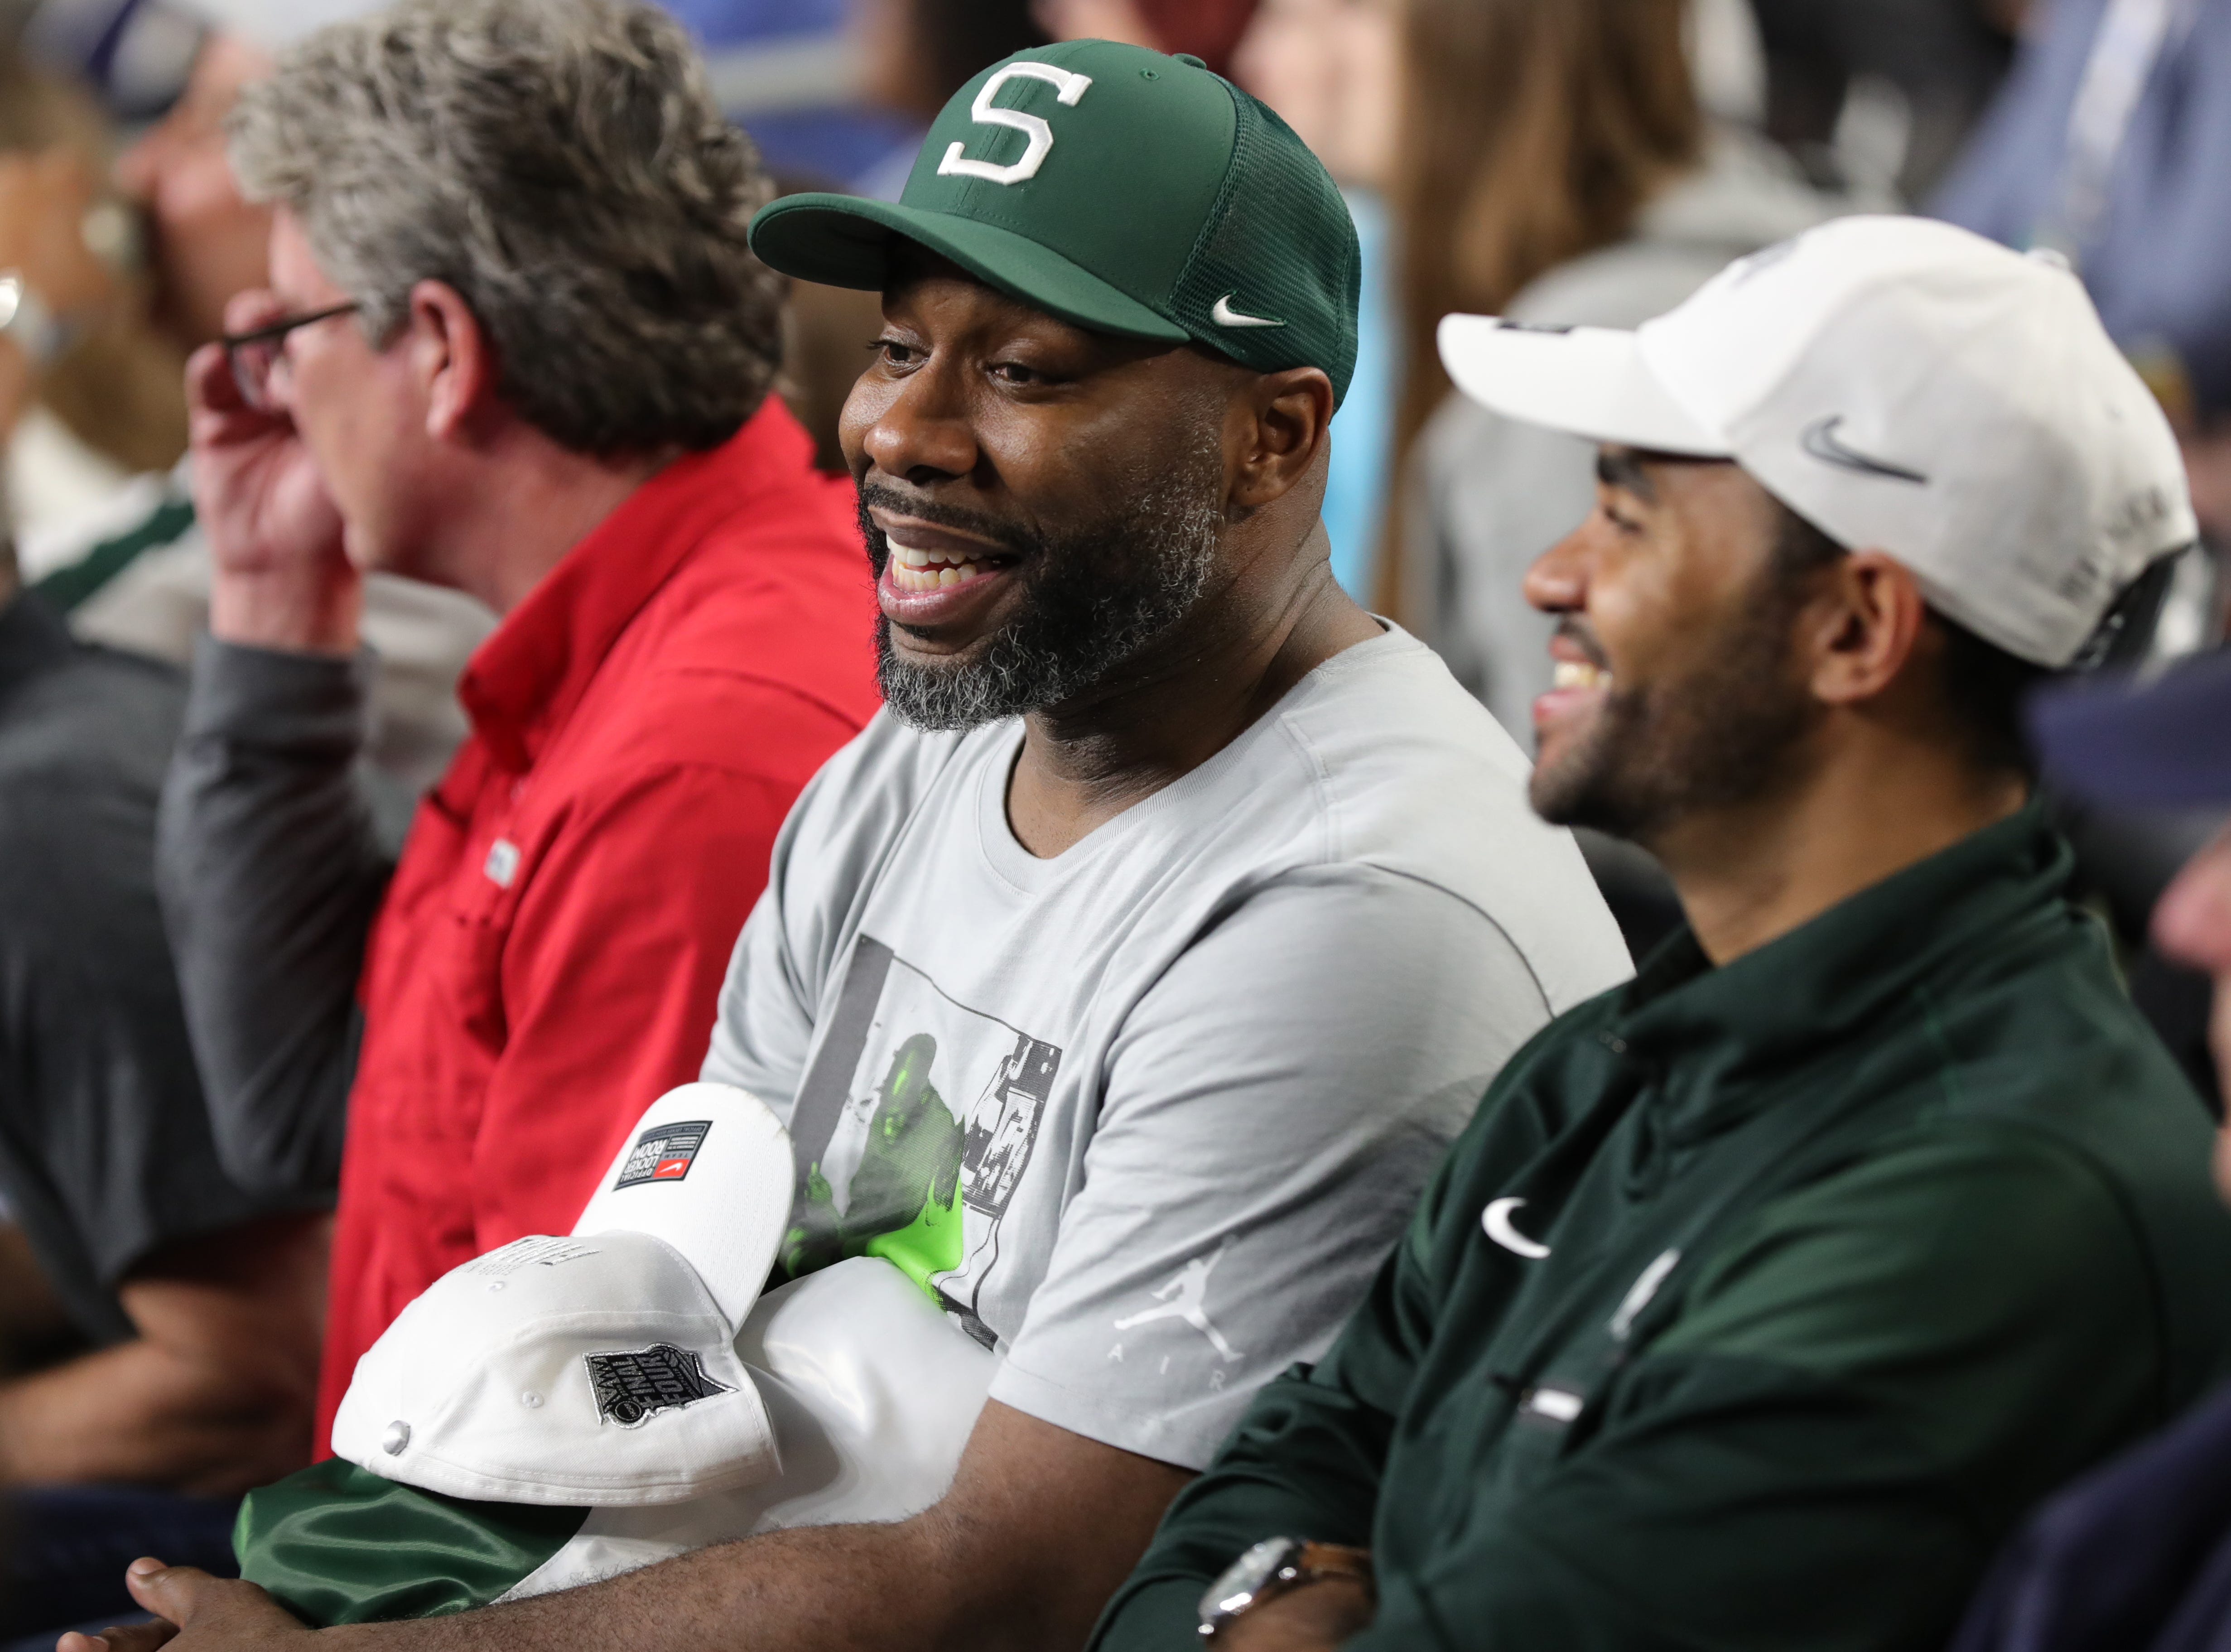 Former Michigan State player Mateen Cleaves in the stands before the start of the Spartan's Final Four game against Texas Tech at U.S. Bank Stadium in Minneapolis, Minnesota on Saturday, April 06, 2019.